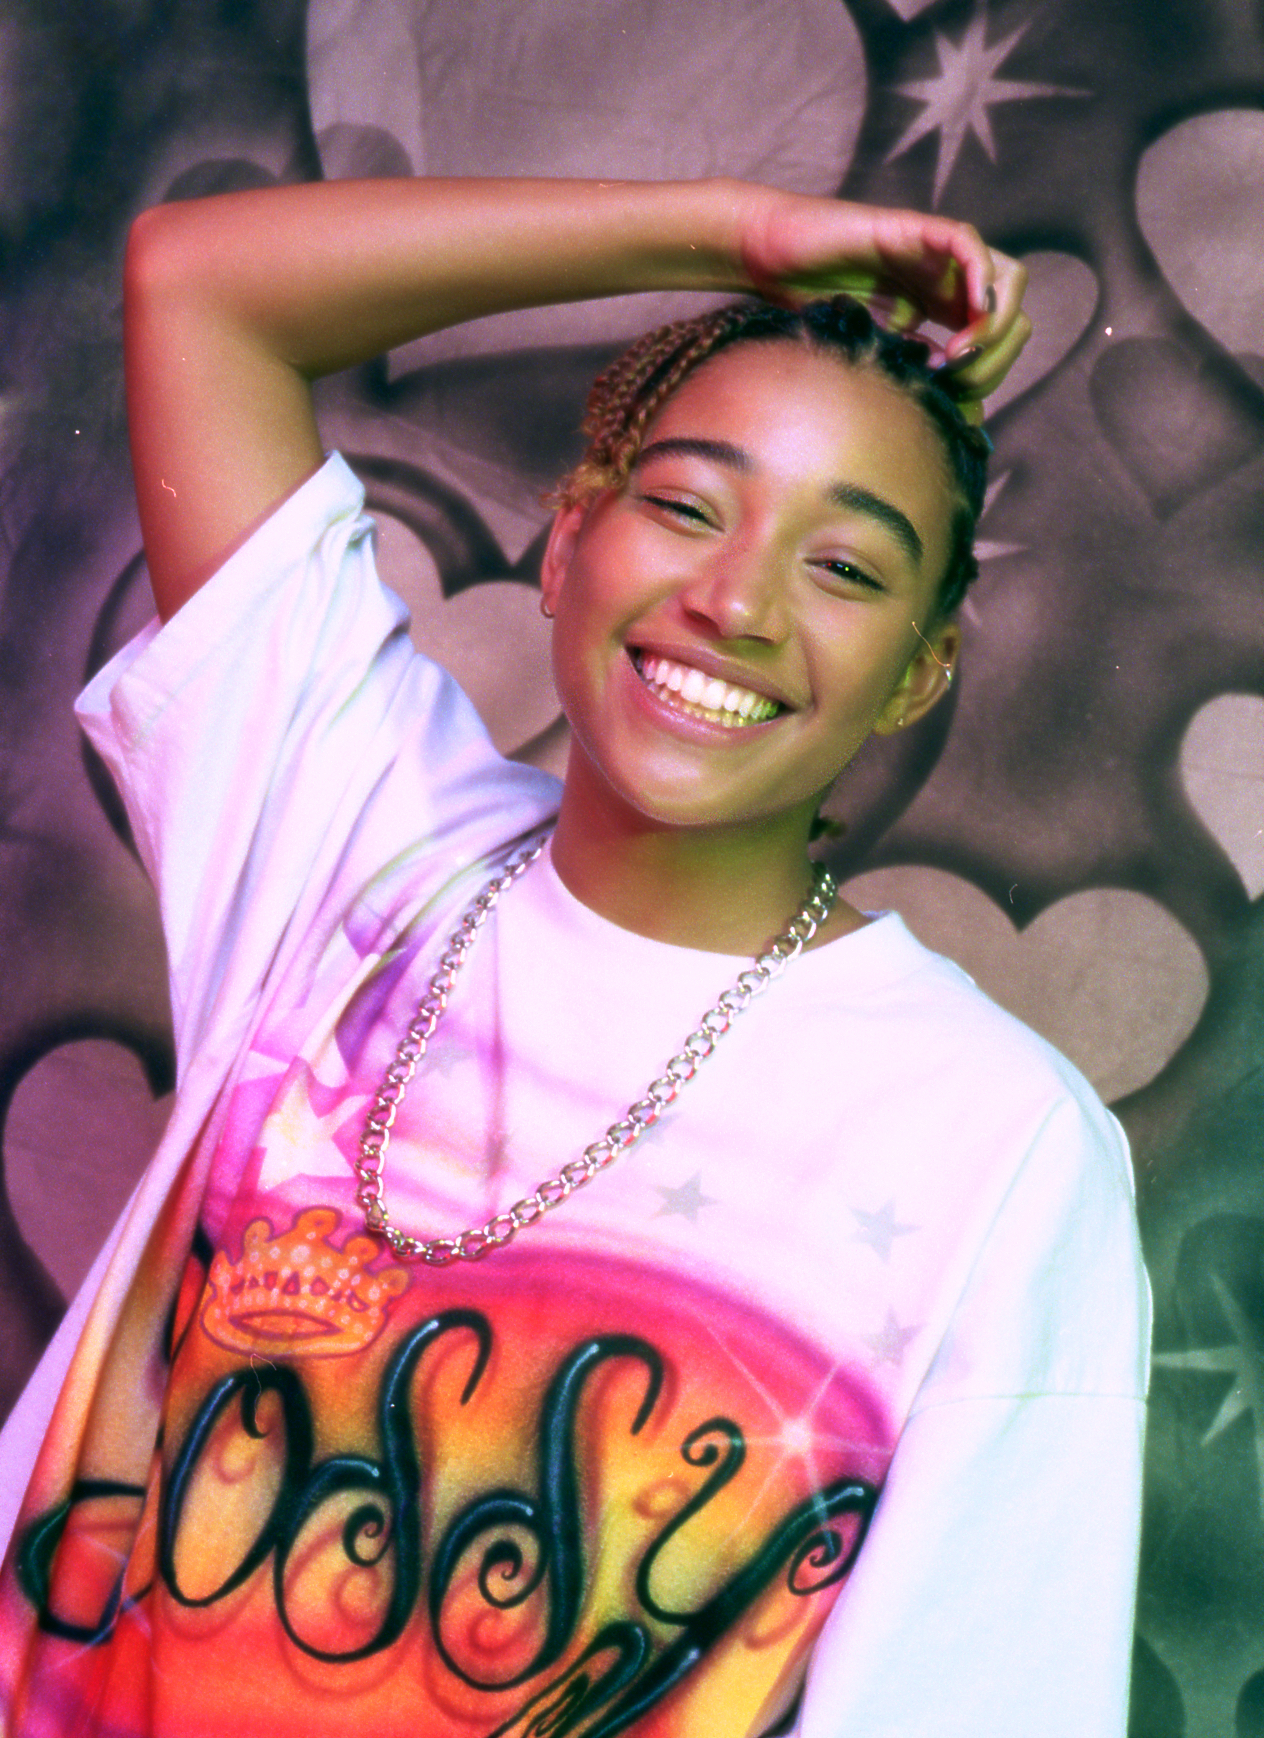 Amandla wears NO SESSO t-shirt, VINTAGE chain.